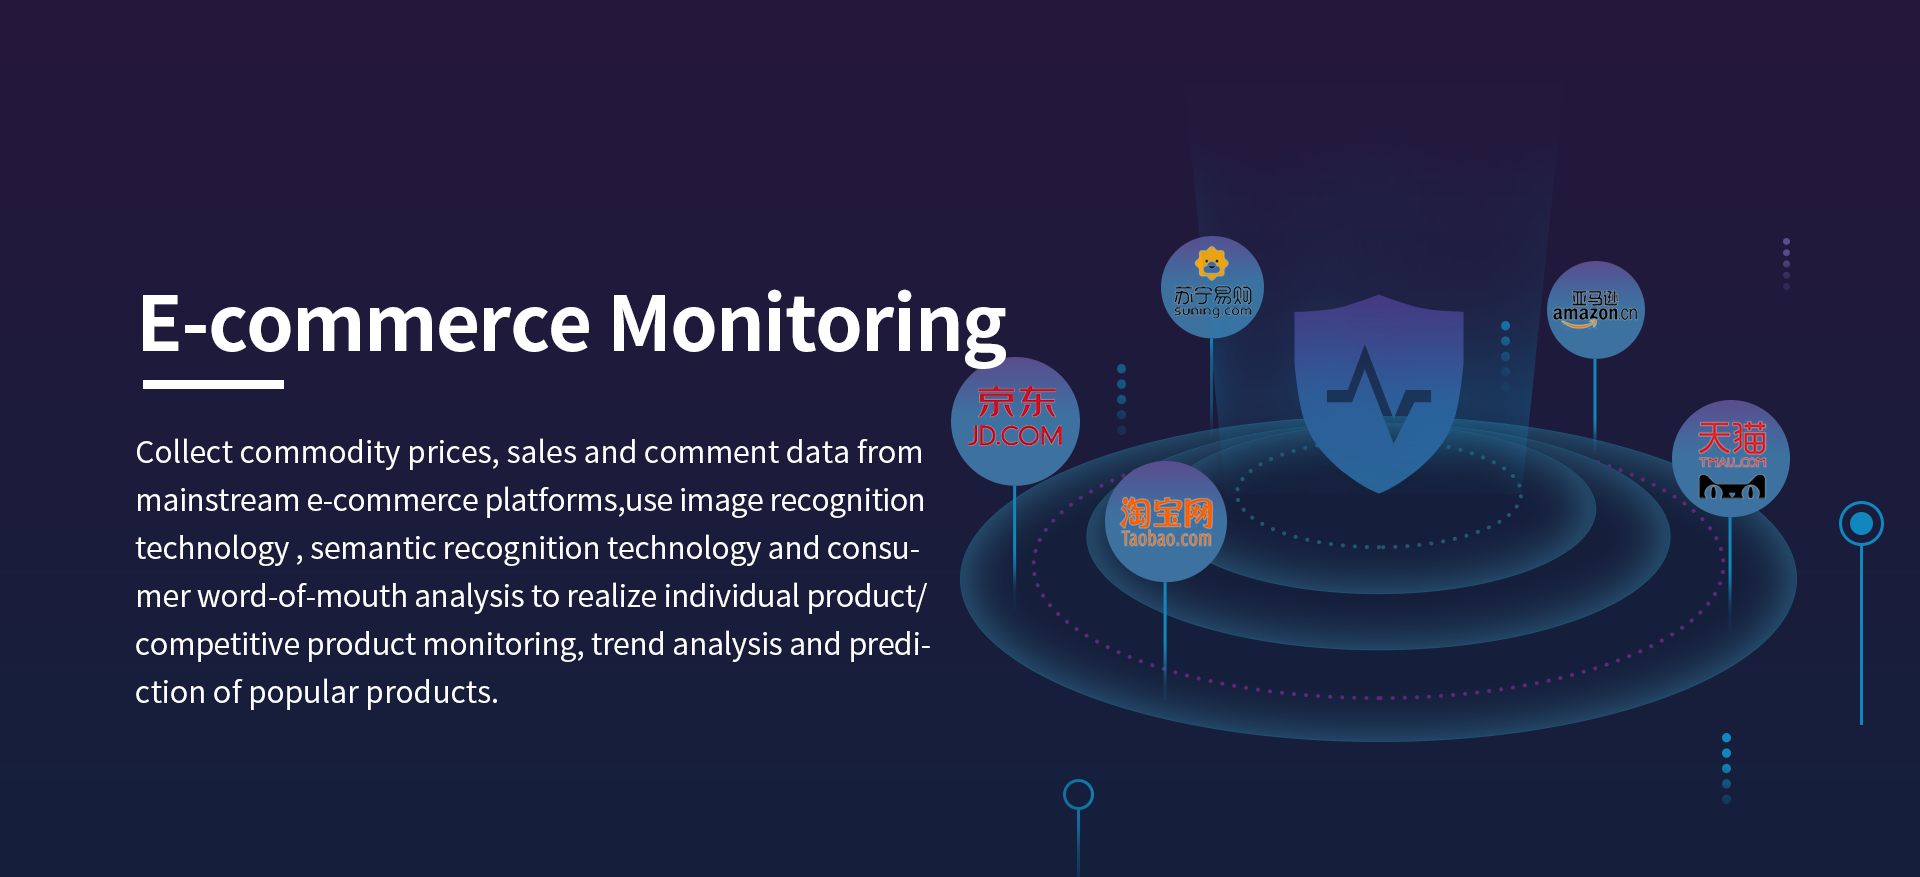 E-commence Monitoring Insight